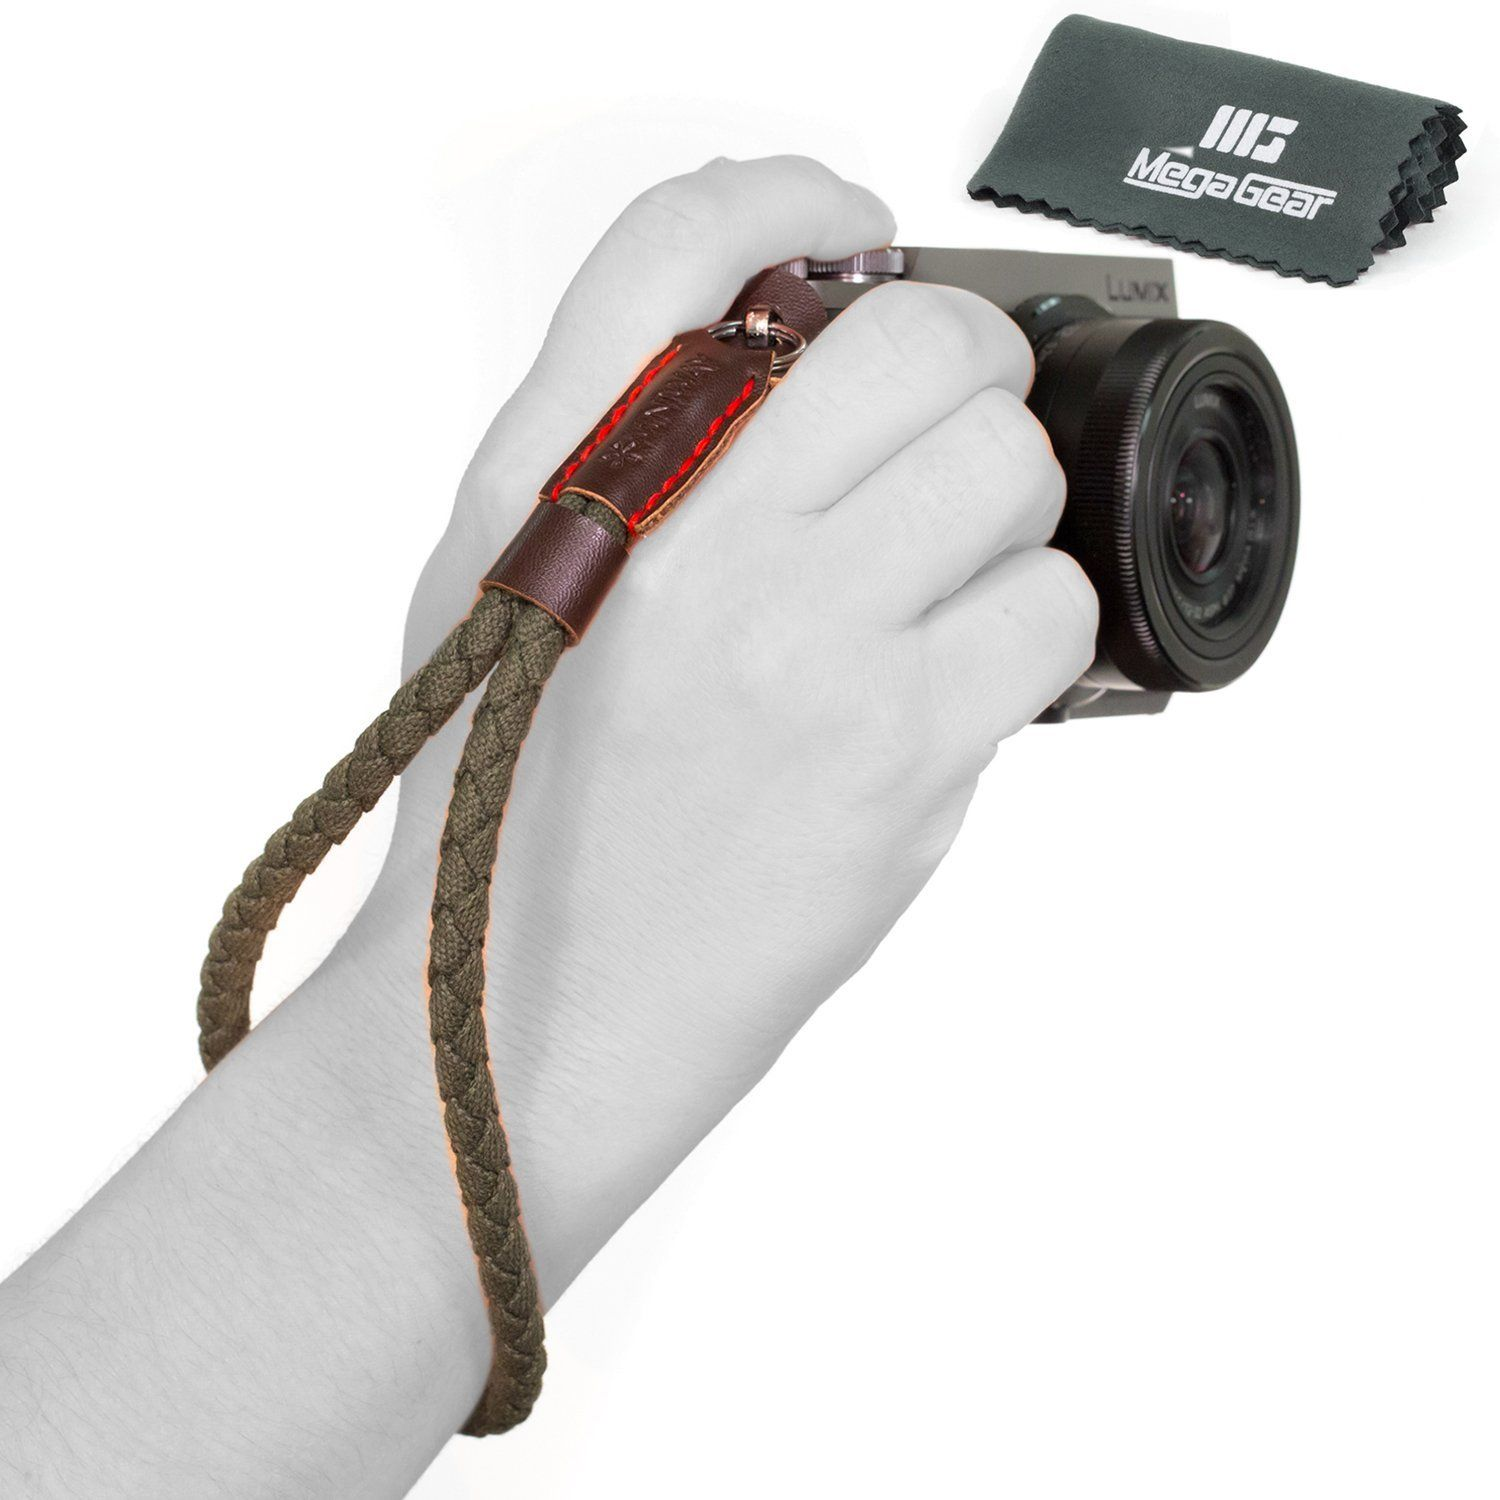 Adjustable With Quick-Release. Canon PowerShot G16 Neck Strap Lanyard Style